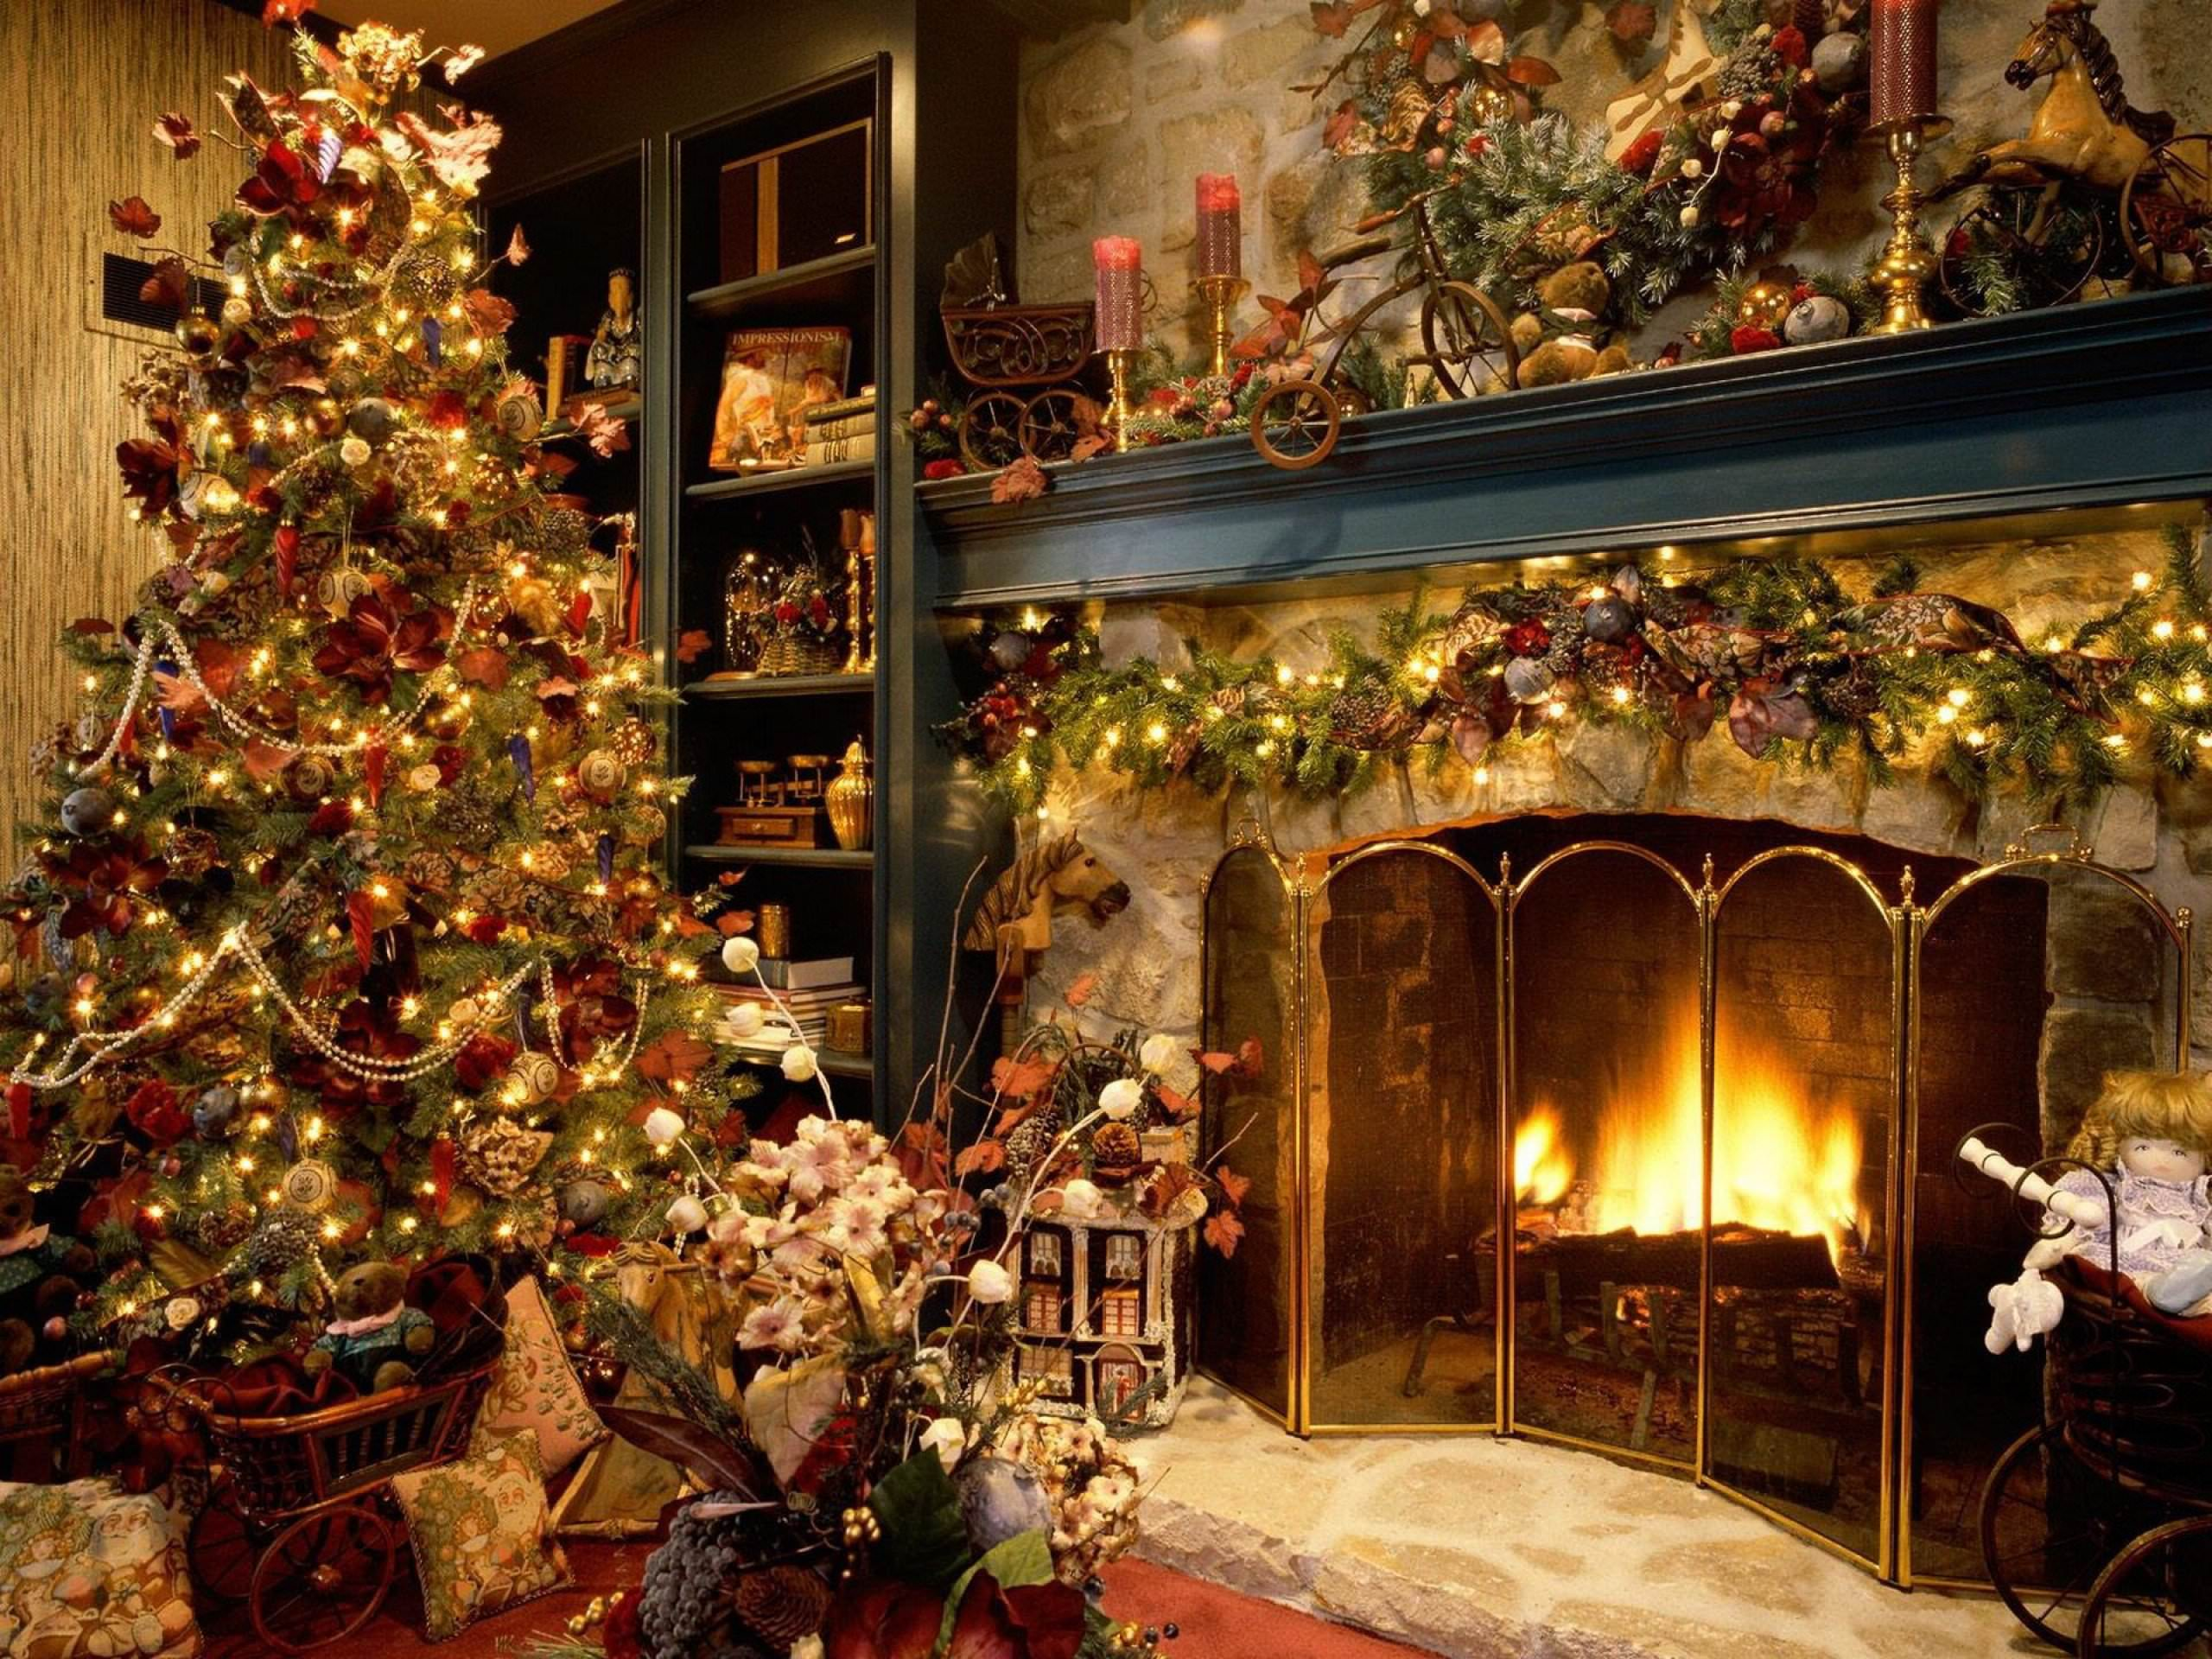 15 Great Living Room Christmas Decorations Ideas For Inspriation